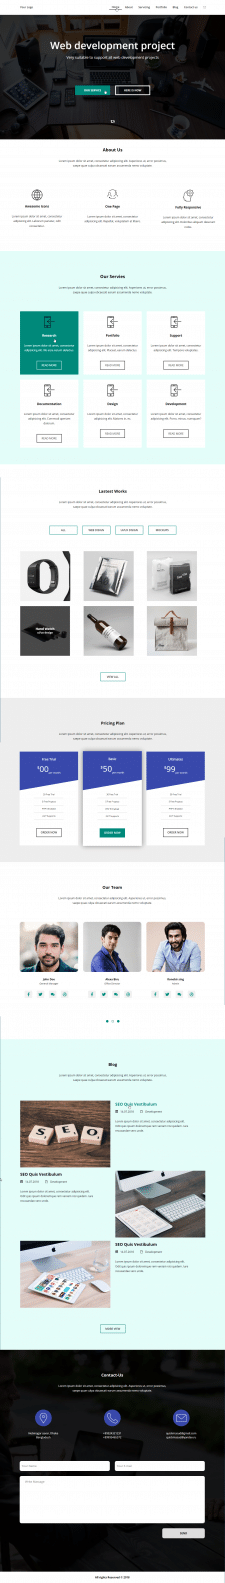 Landing page - Web Development Project